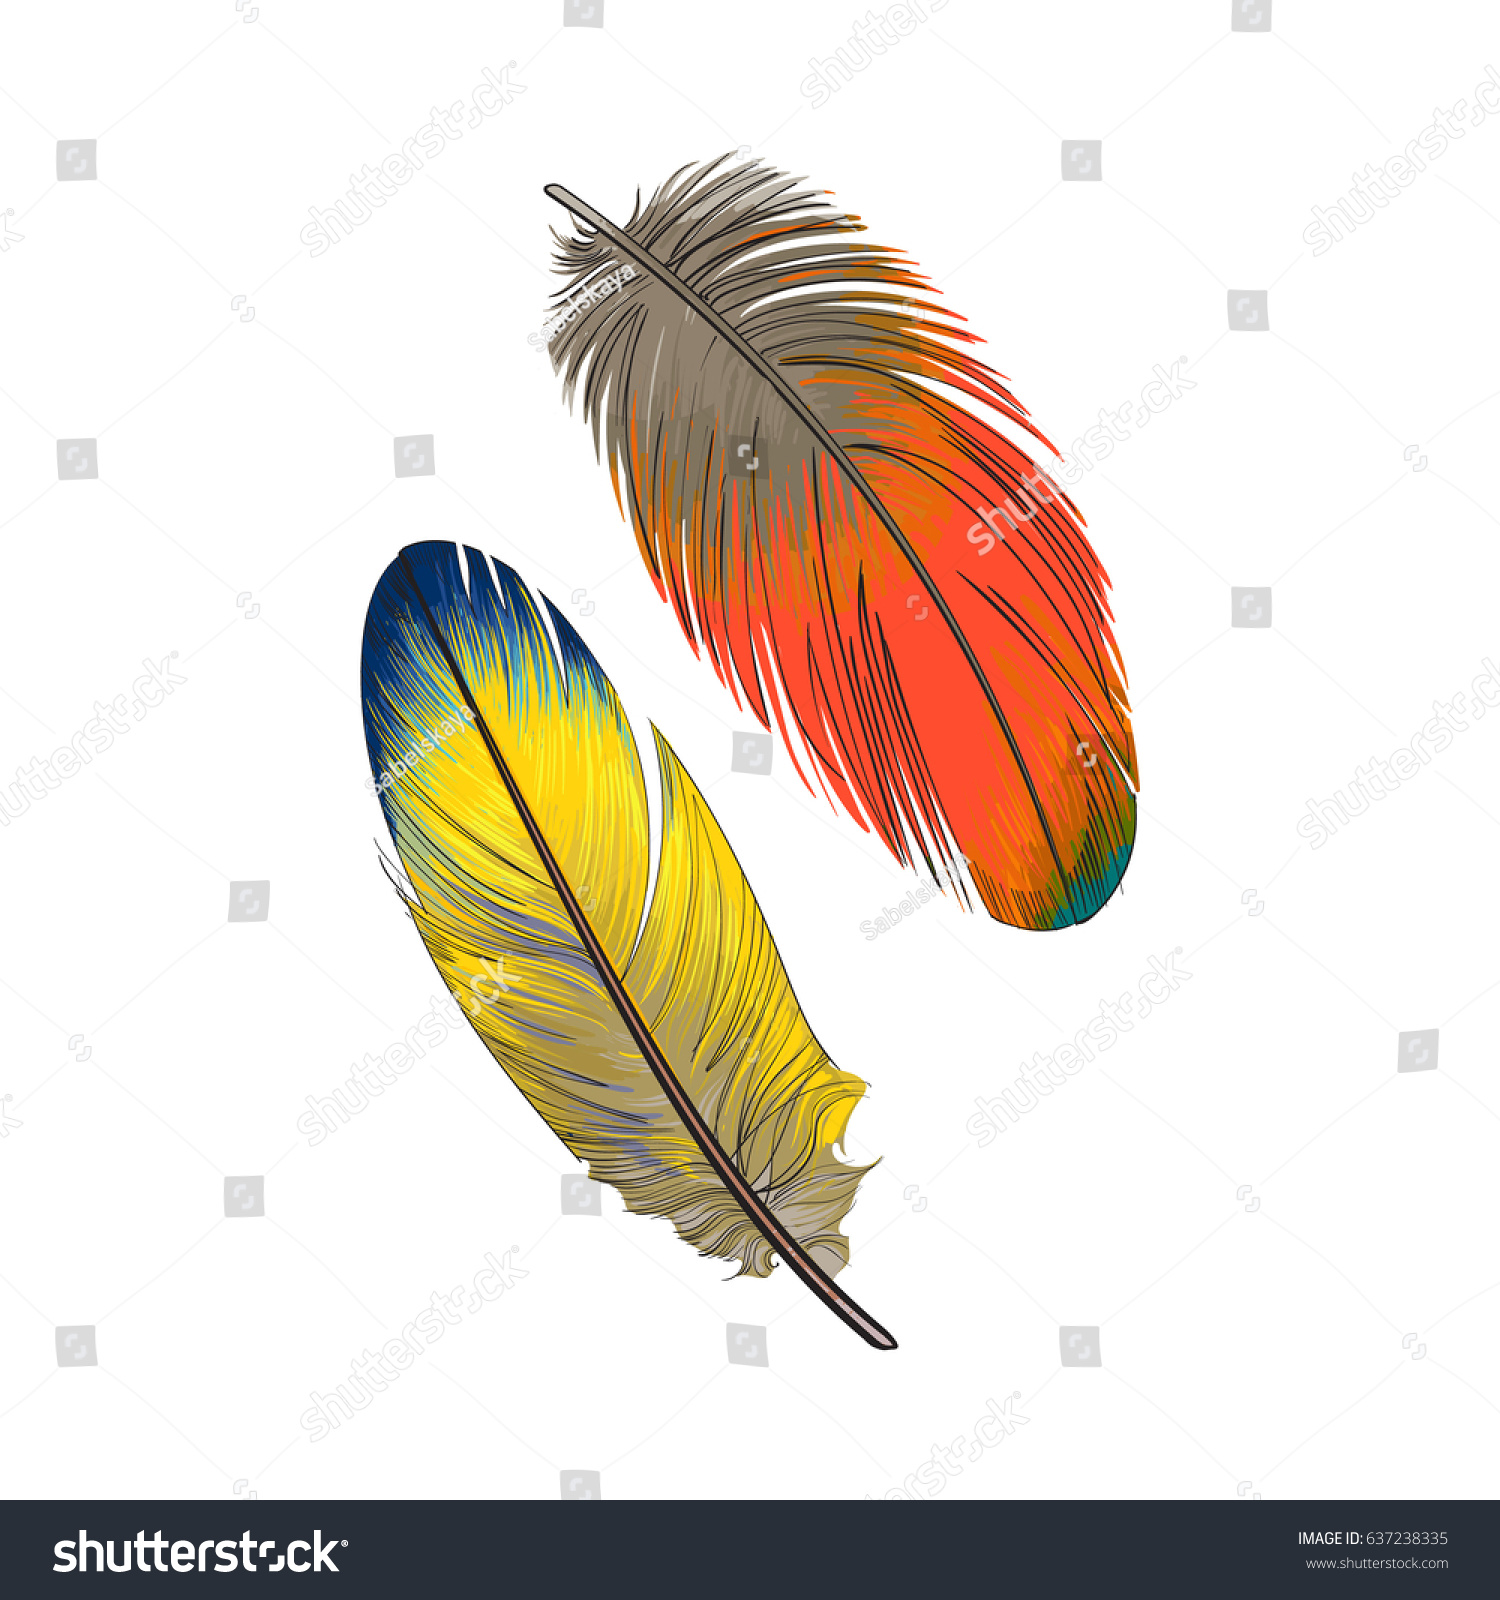 Smooth feather photo